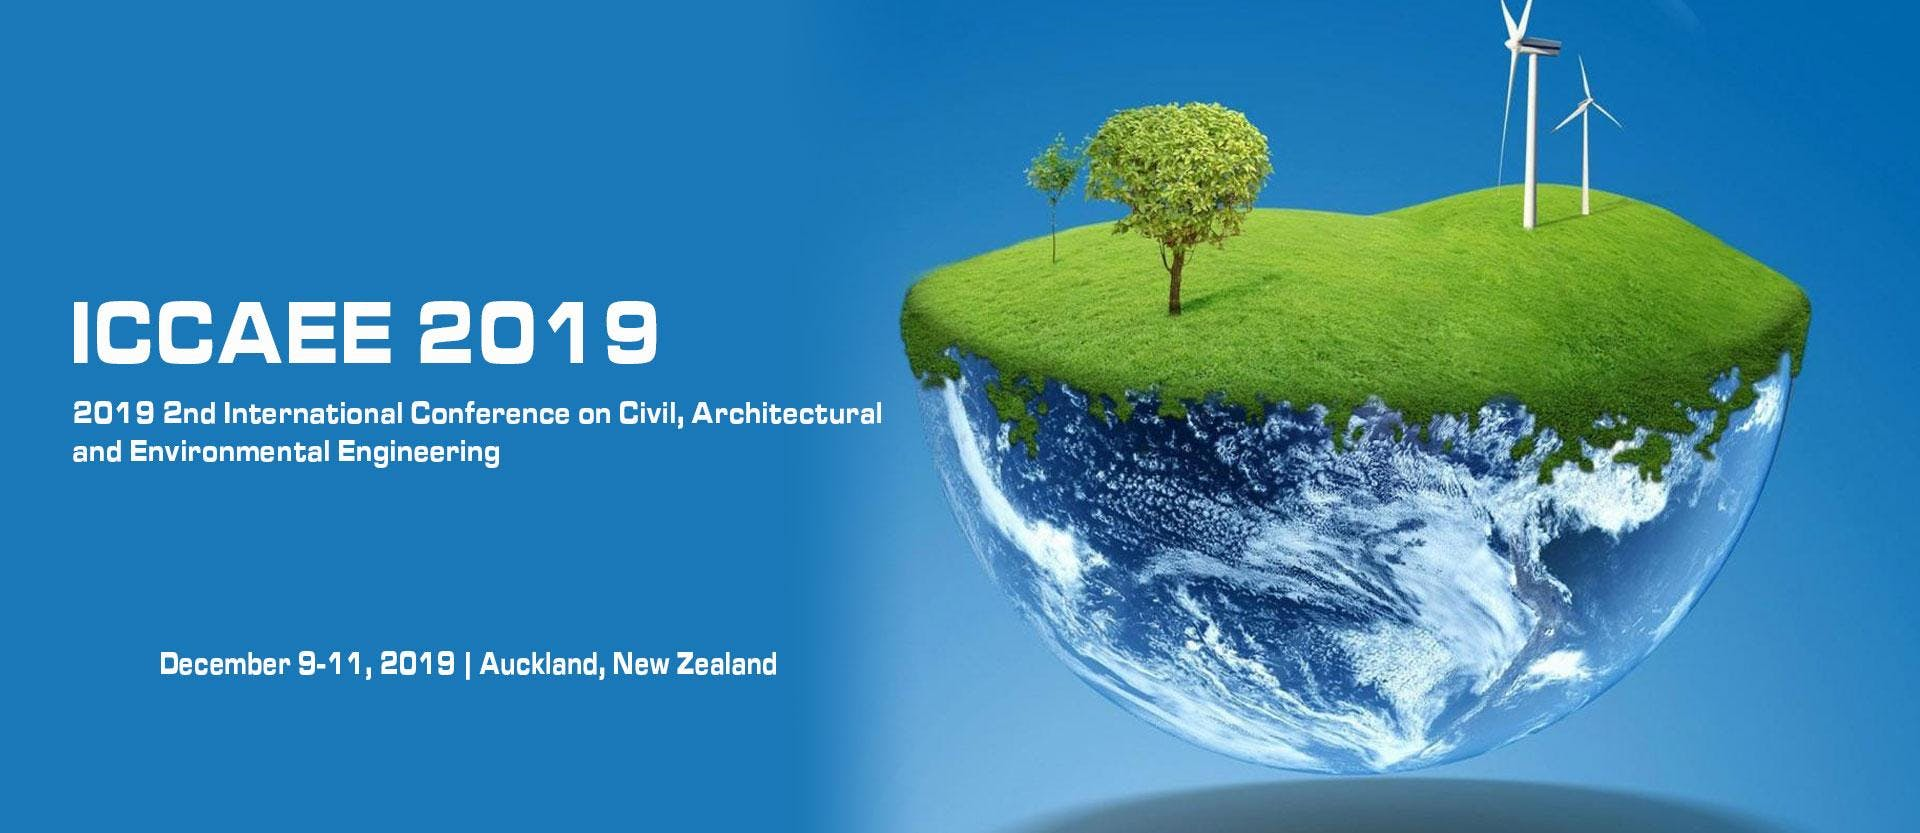 2019 2nd International Conference on Civil, Architectural and Environmental Engineering(ICCAEE 2019)